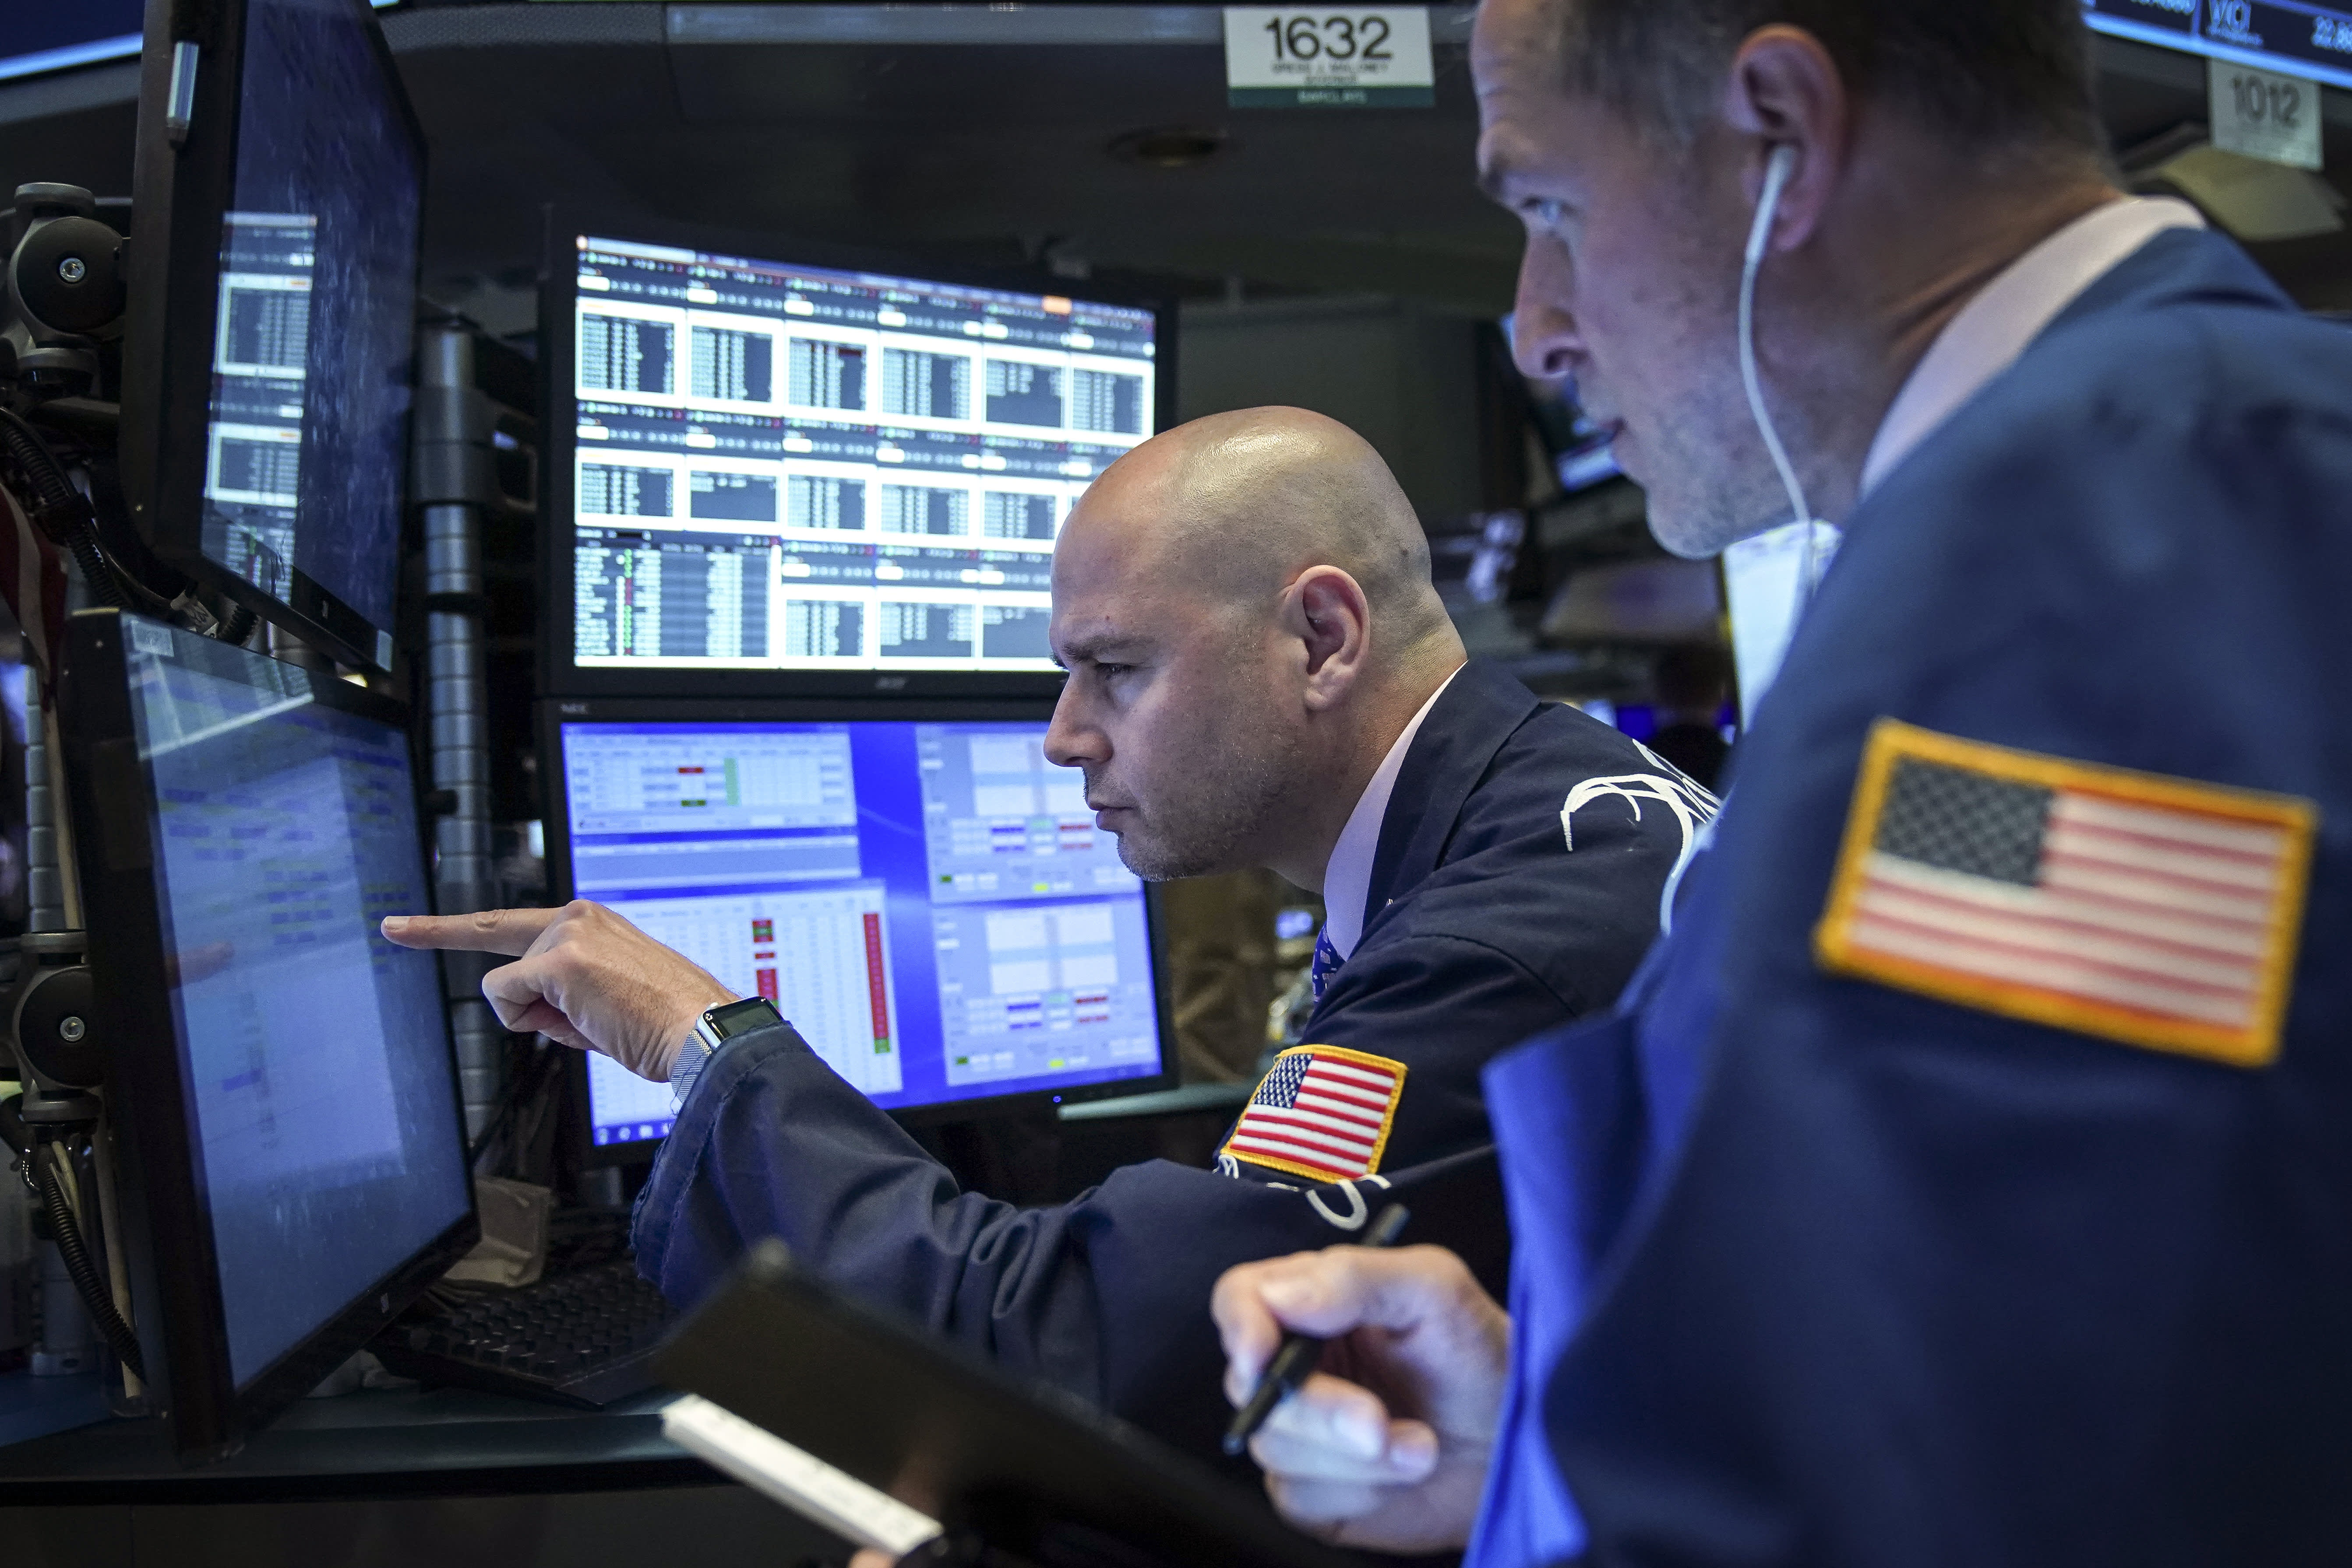 Traders and financial professionals work at the opening bell on the floor of the New York Stock Exchange (NYSE), May 6, 2019 in New York City.